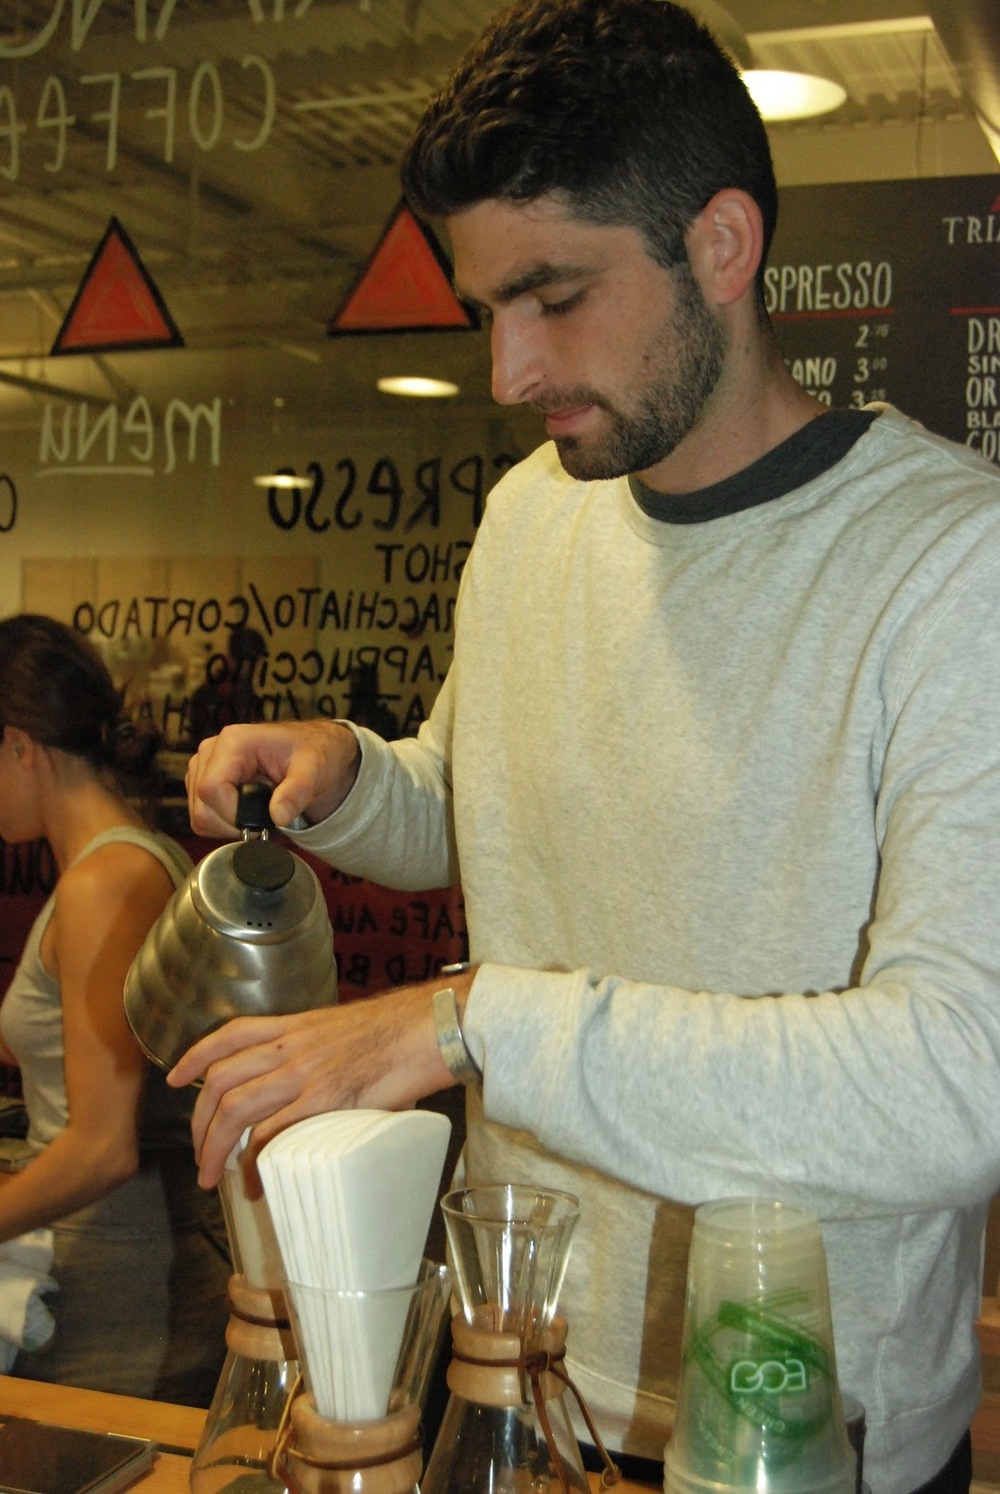 Triangle Coffee co-founder, Ottavio Siani, shares the barista shifts with his two other co-founders.